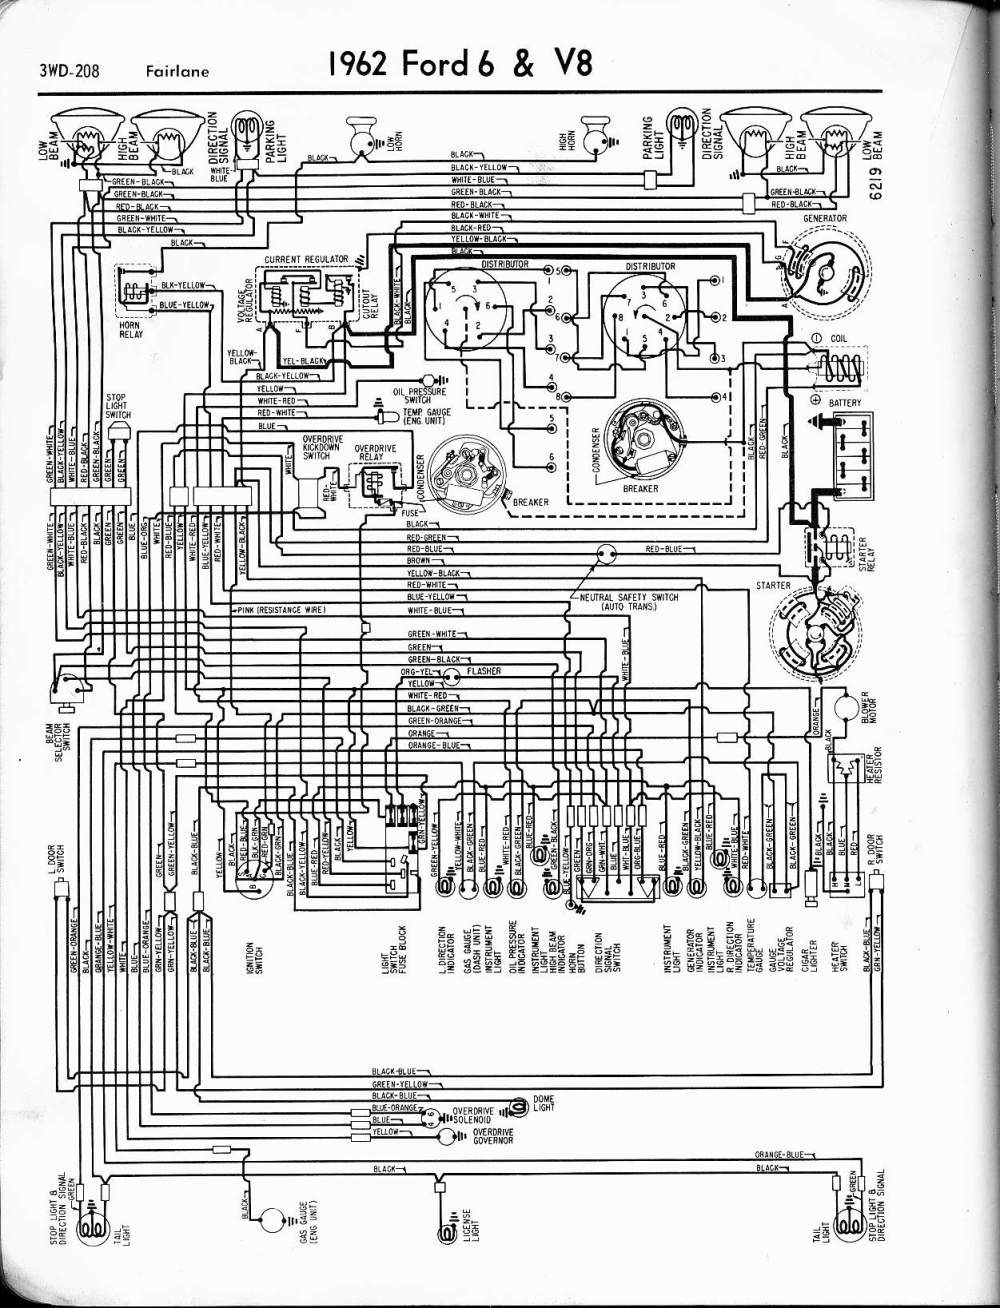 medium resolution of wiring diagram furthermore 1962 ford thunderbird wiring diagram on 2002 ford explorer fuse diagram 1962 ford fuse block diagram